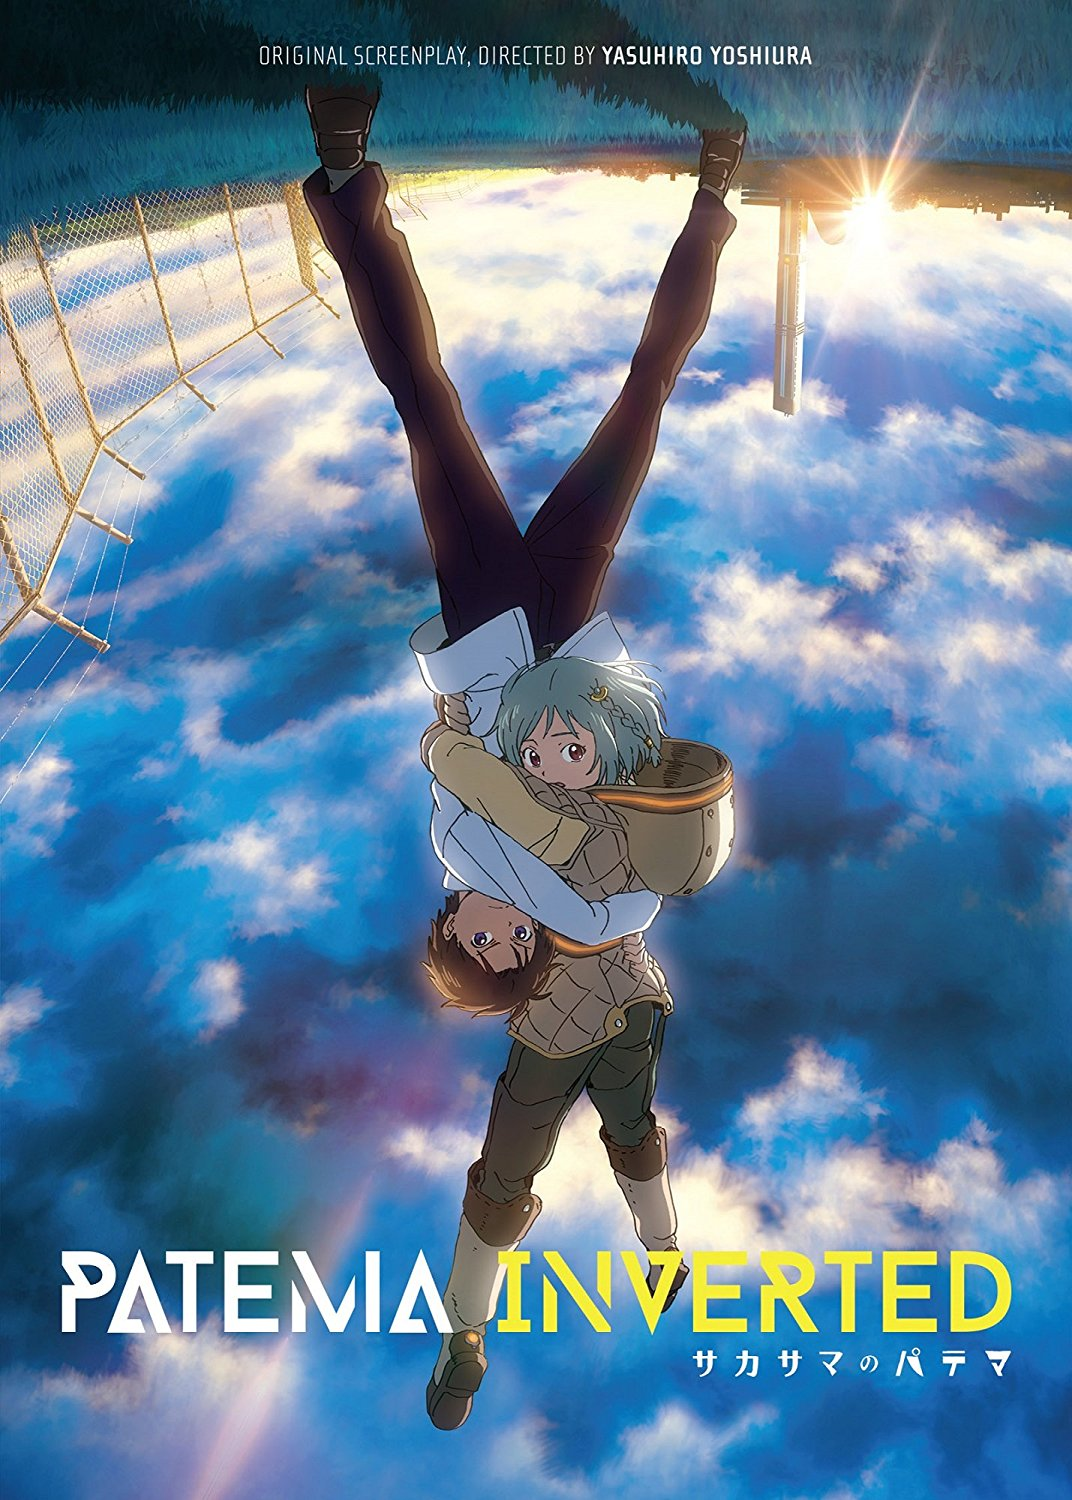 PATEMA INVERTED anime at Japan Foundation London (20 APR).